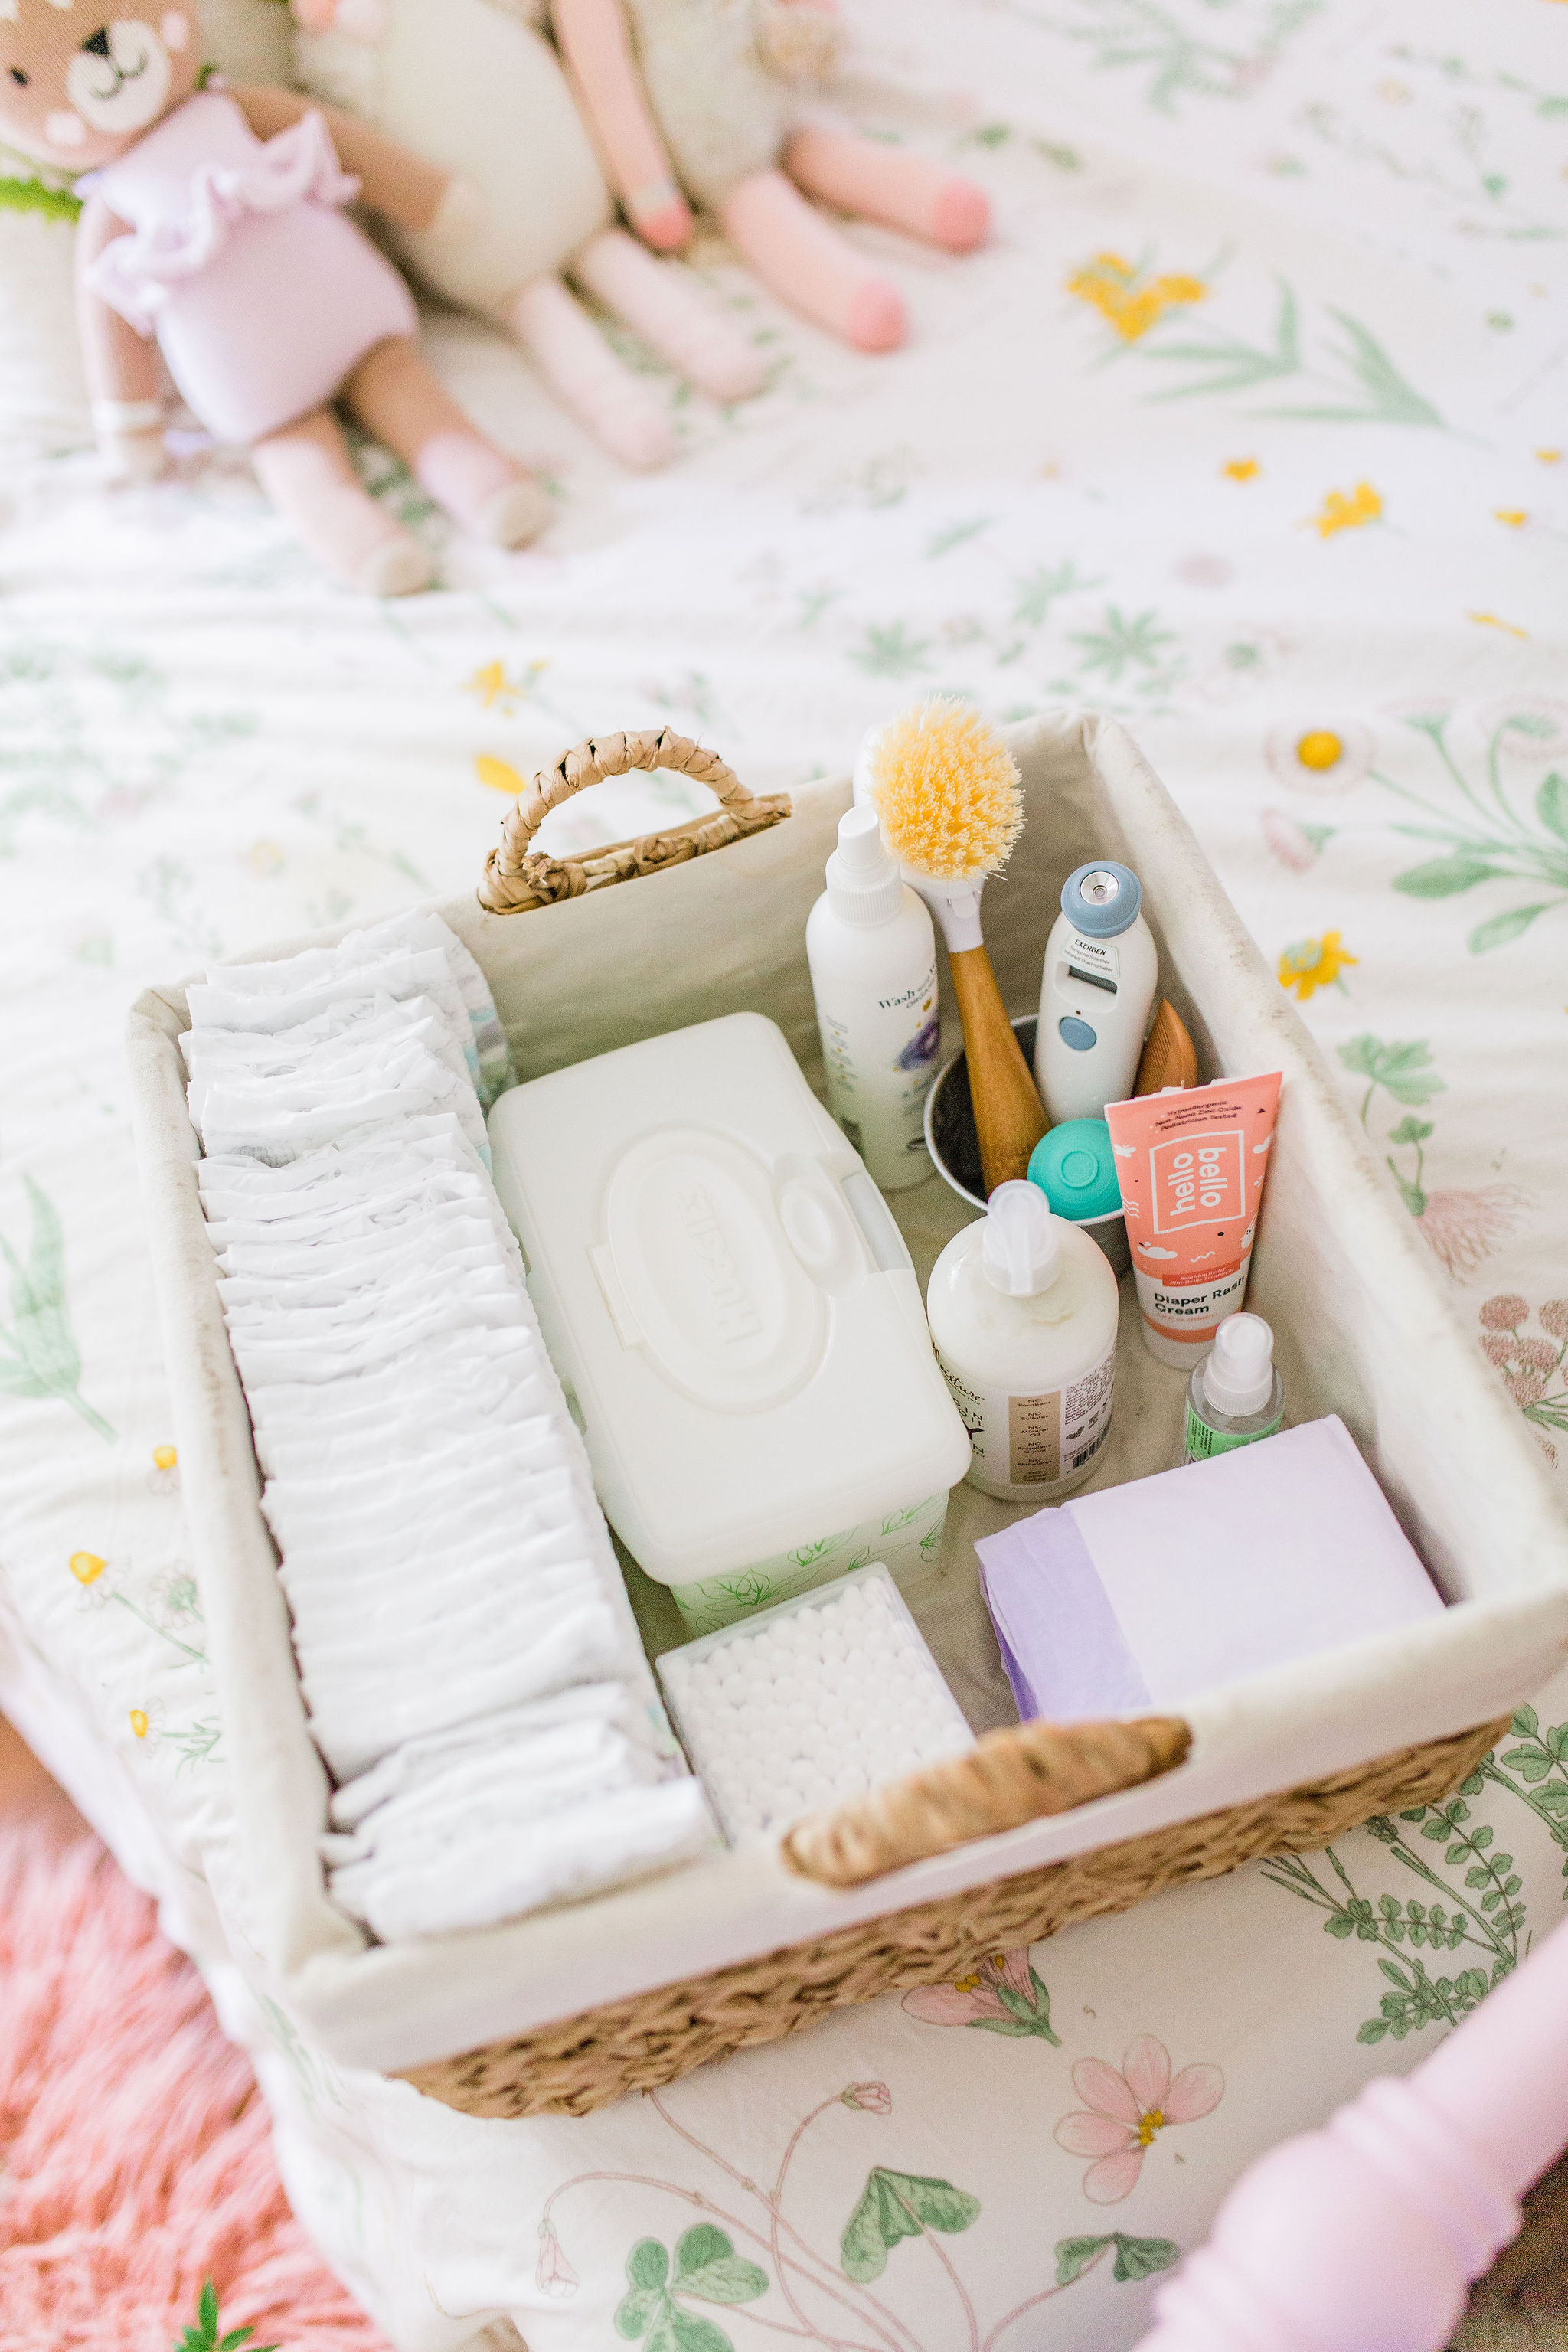 DIY Diapering Station/ Diaper Caddy for in Home and Car